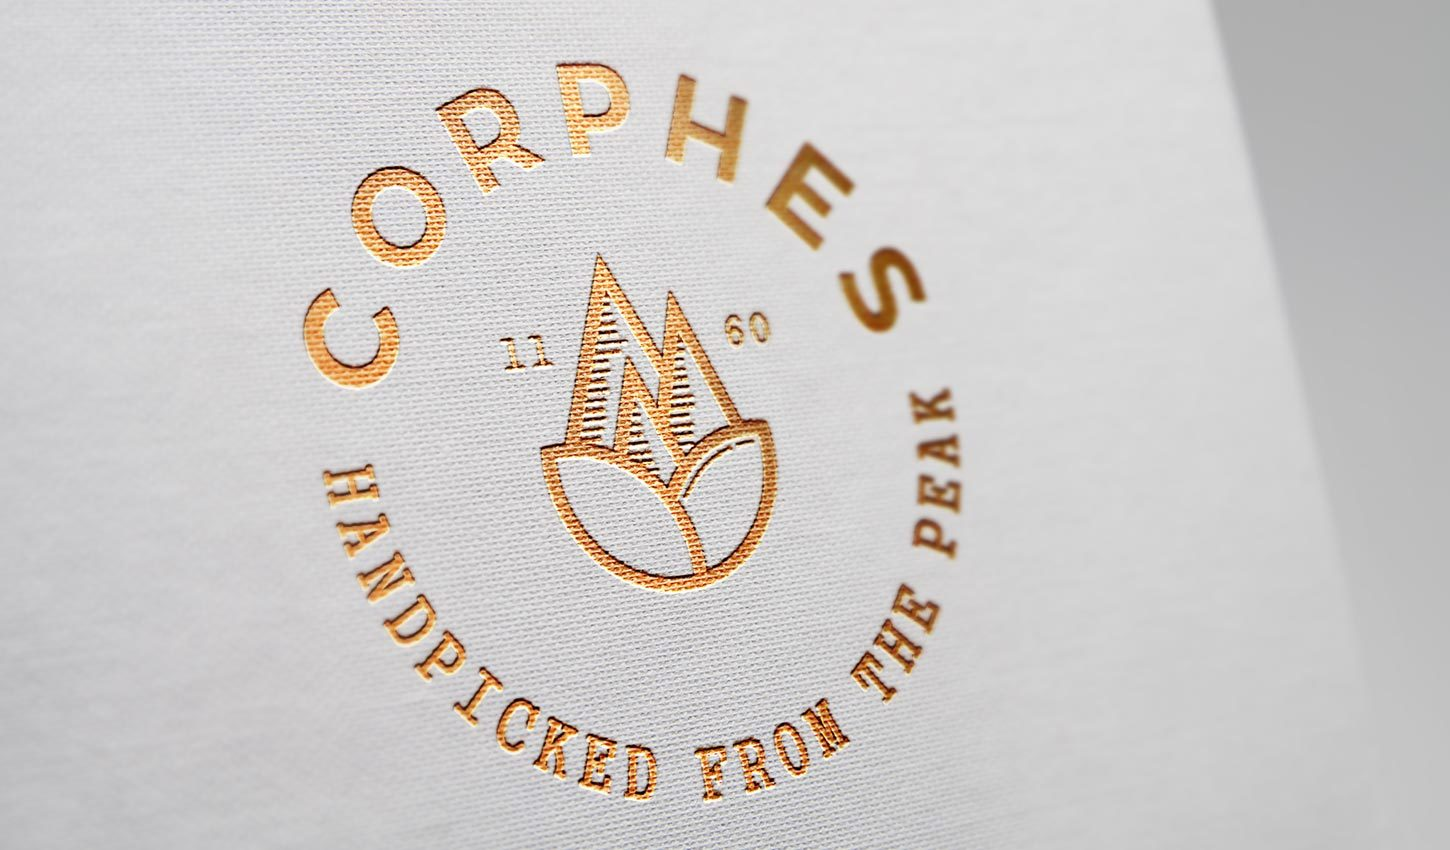 Corphes Logo – Luminous Design Group